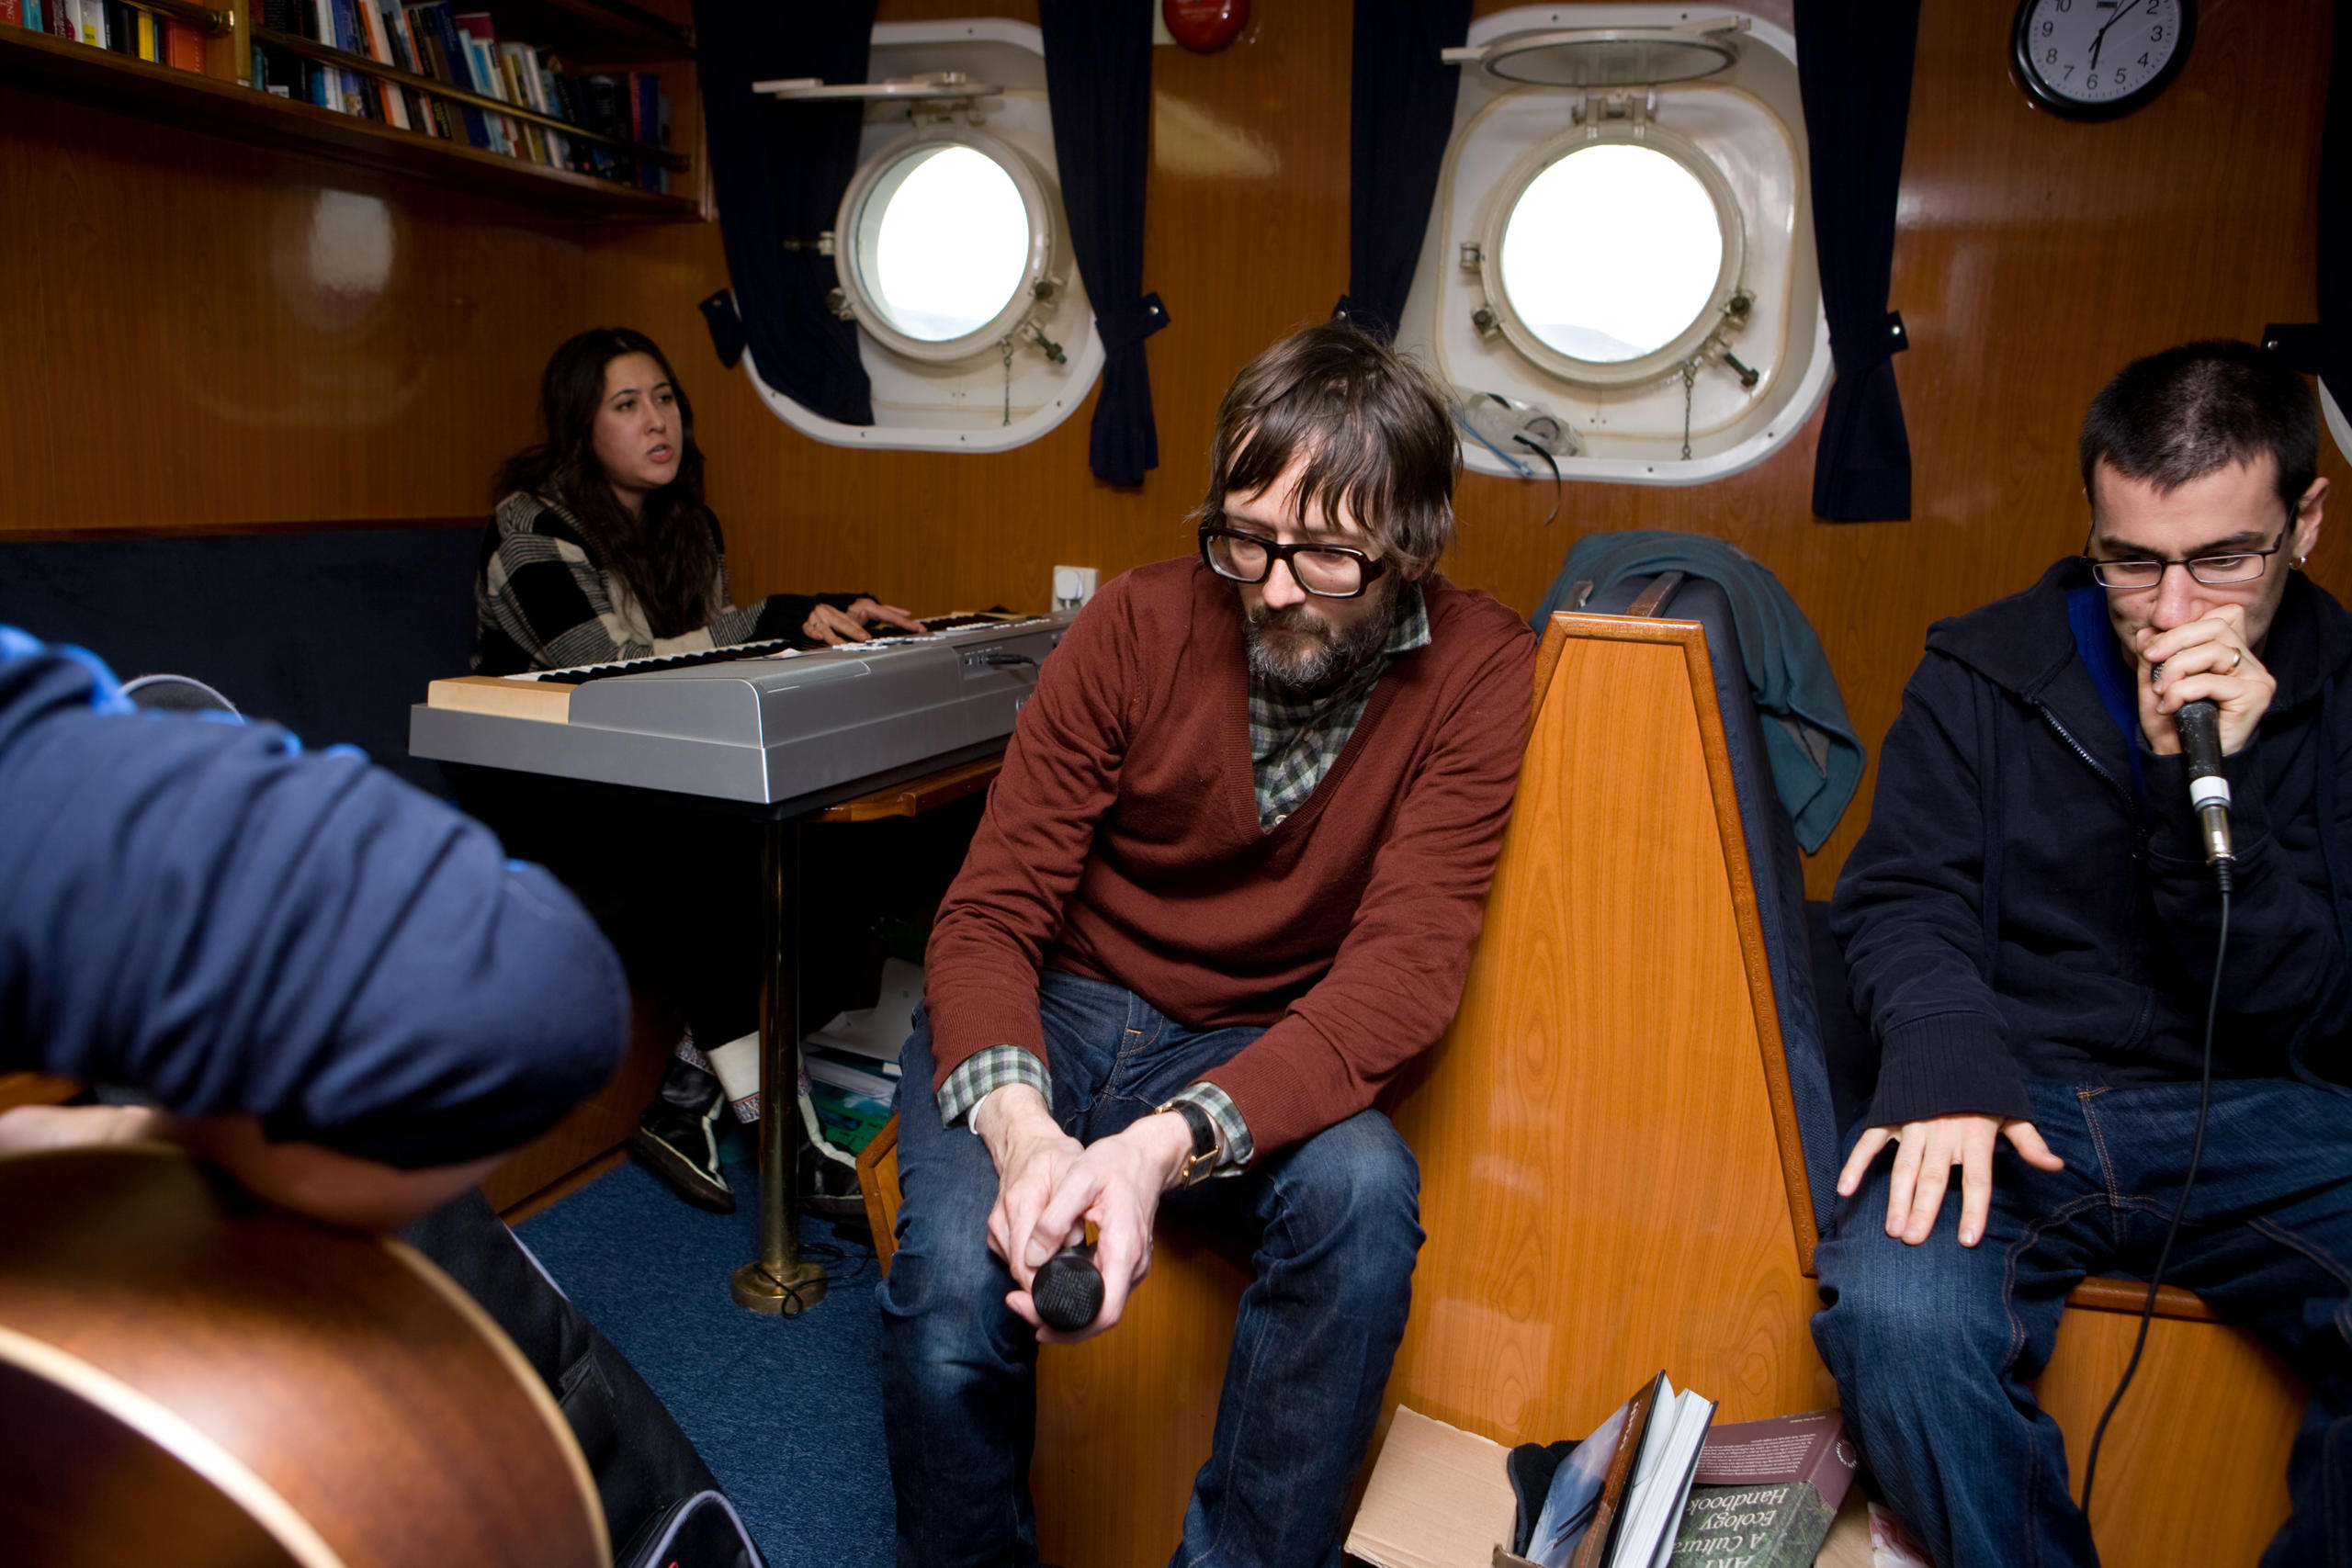 musicians jamming in a boat cabin